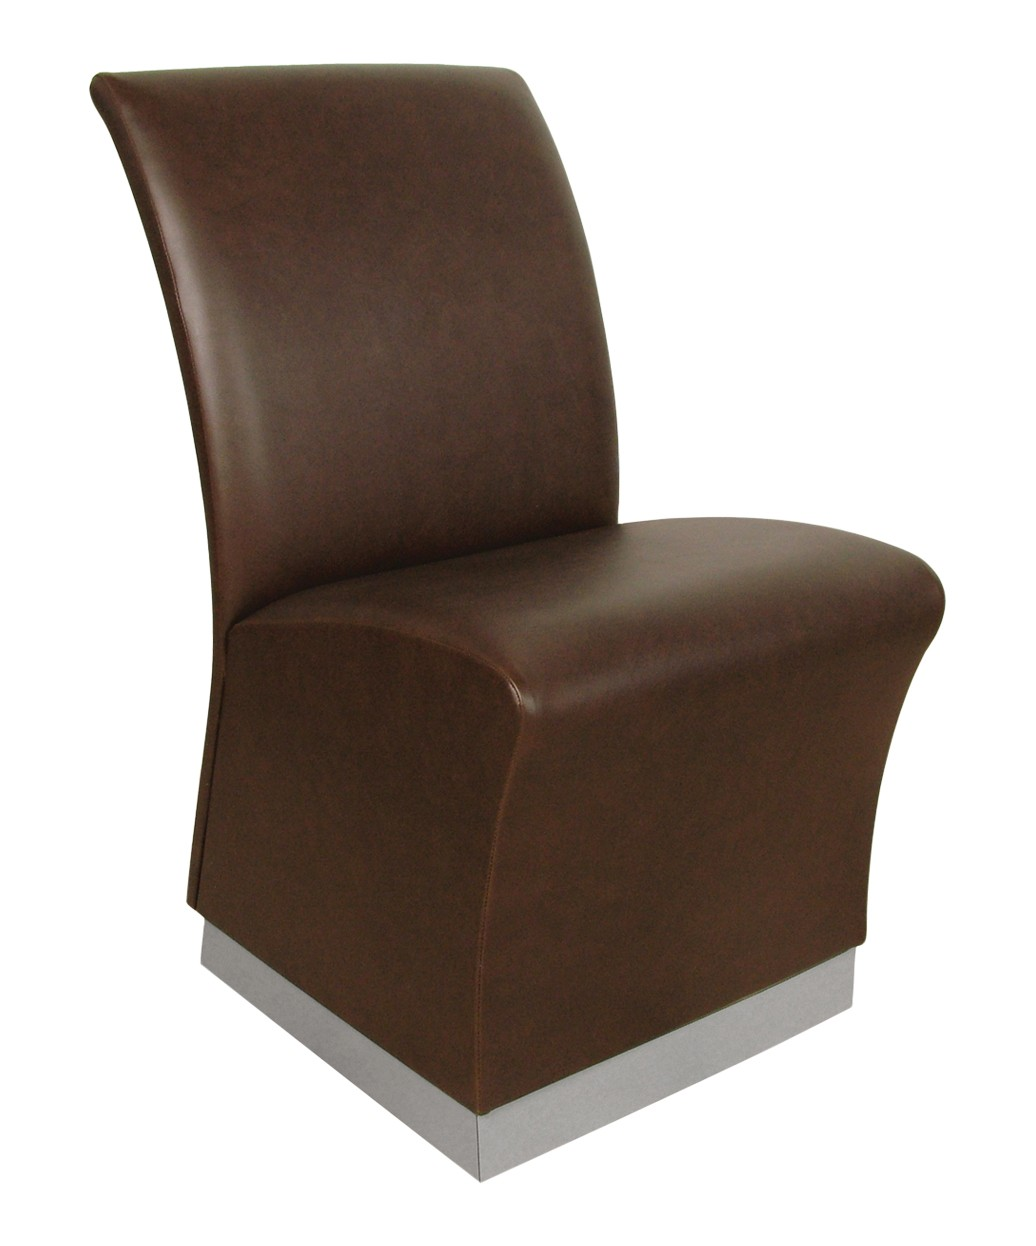 1975 QSE Lanai Reception Chair with Toe-Kick Base